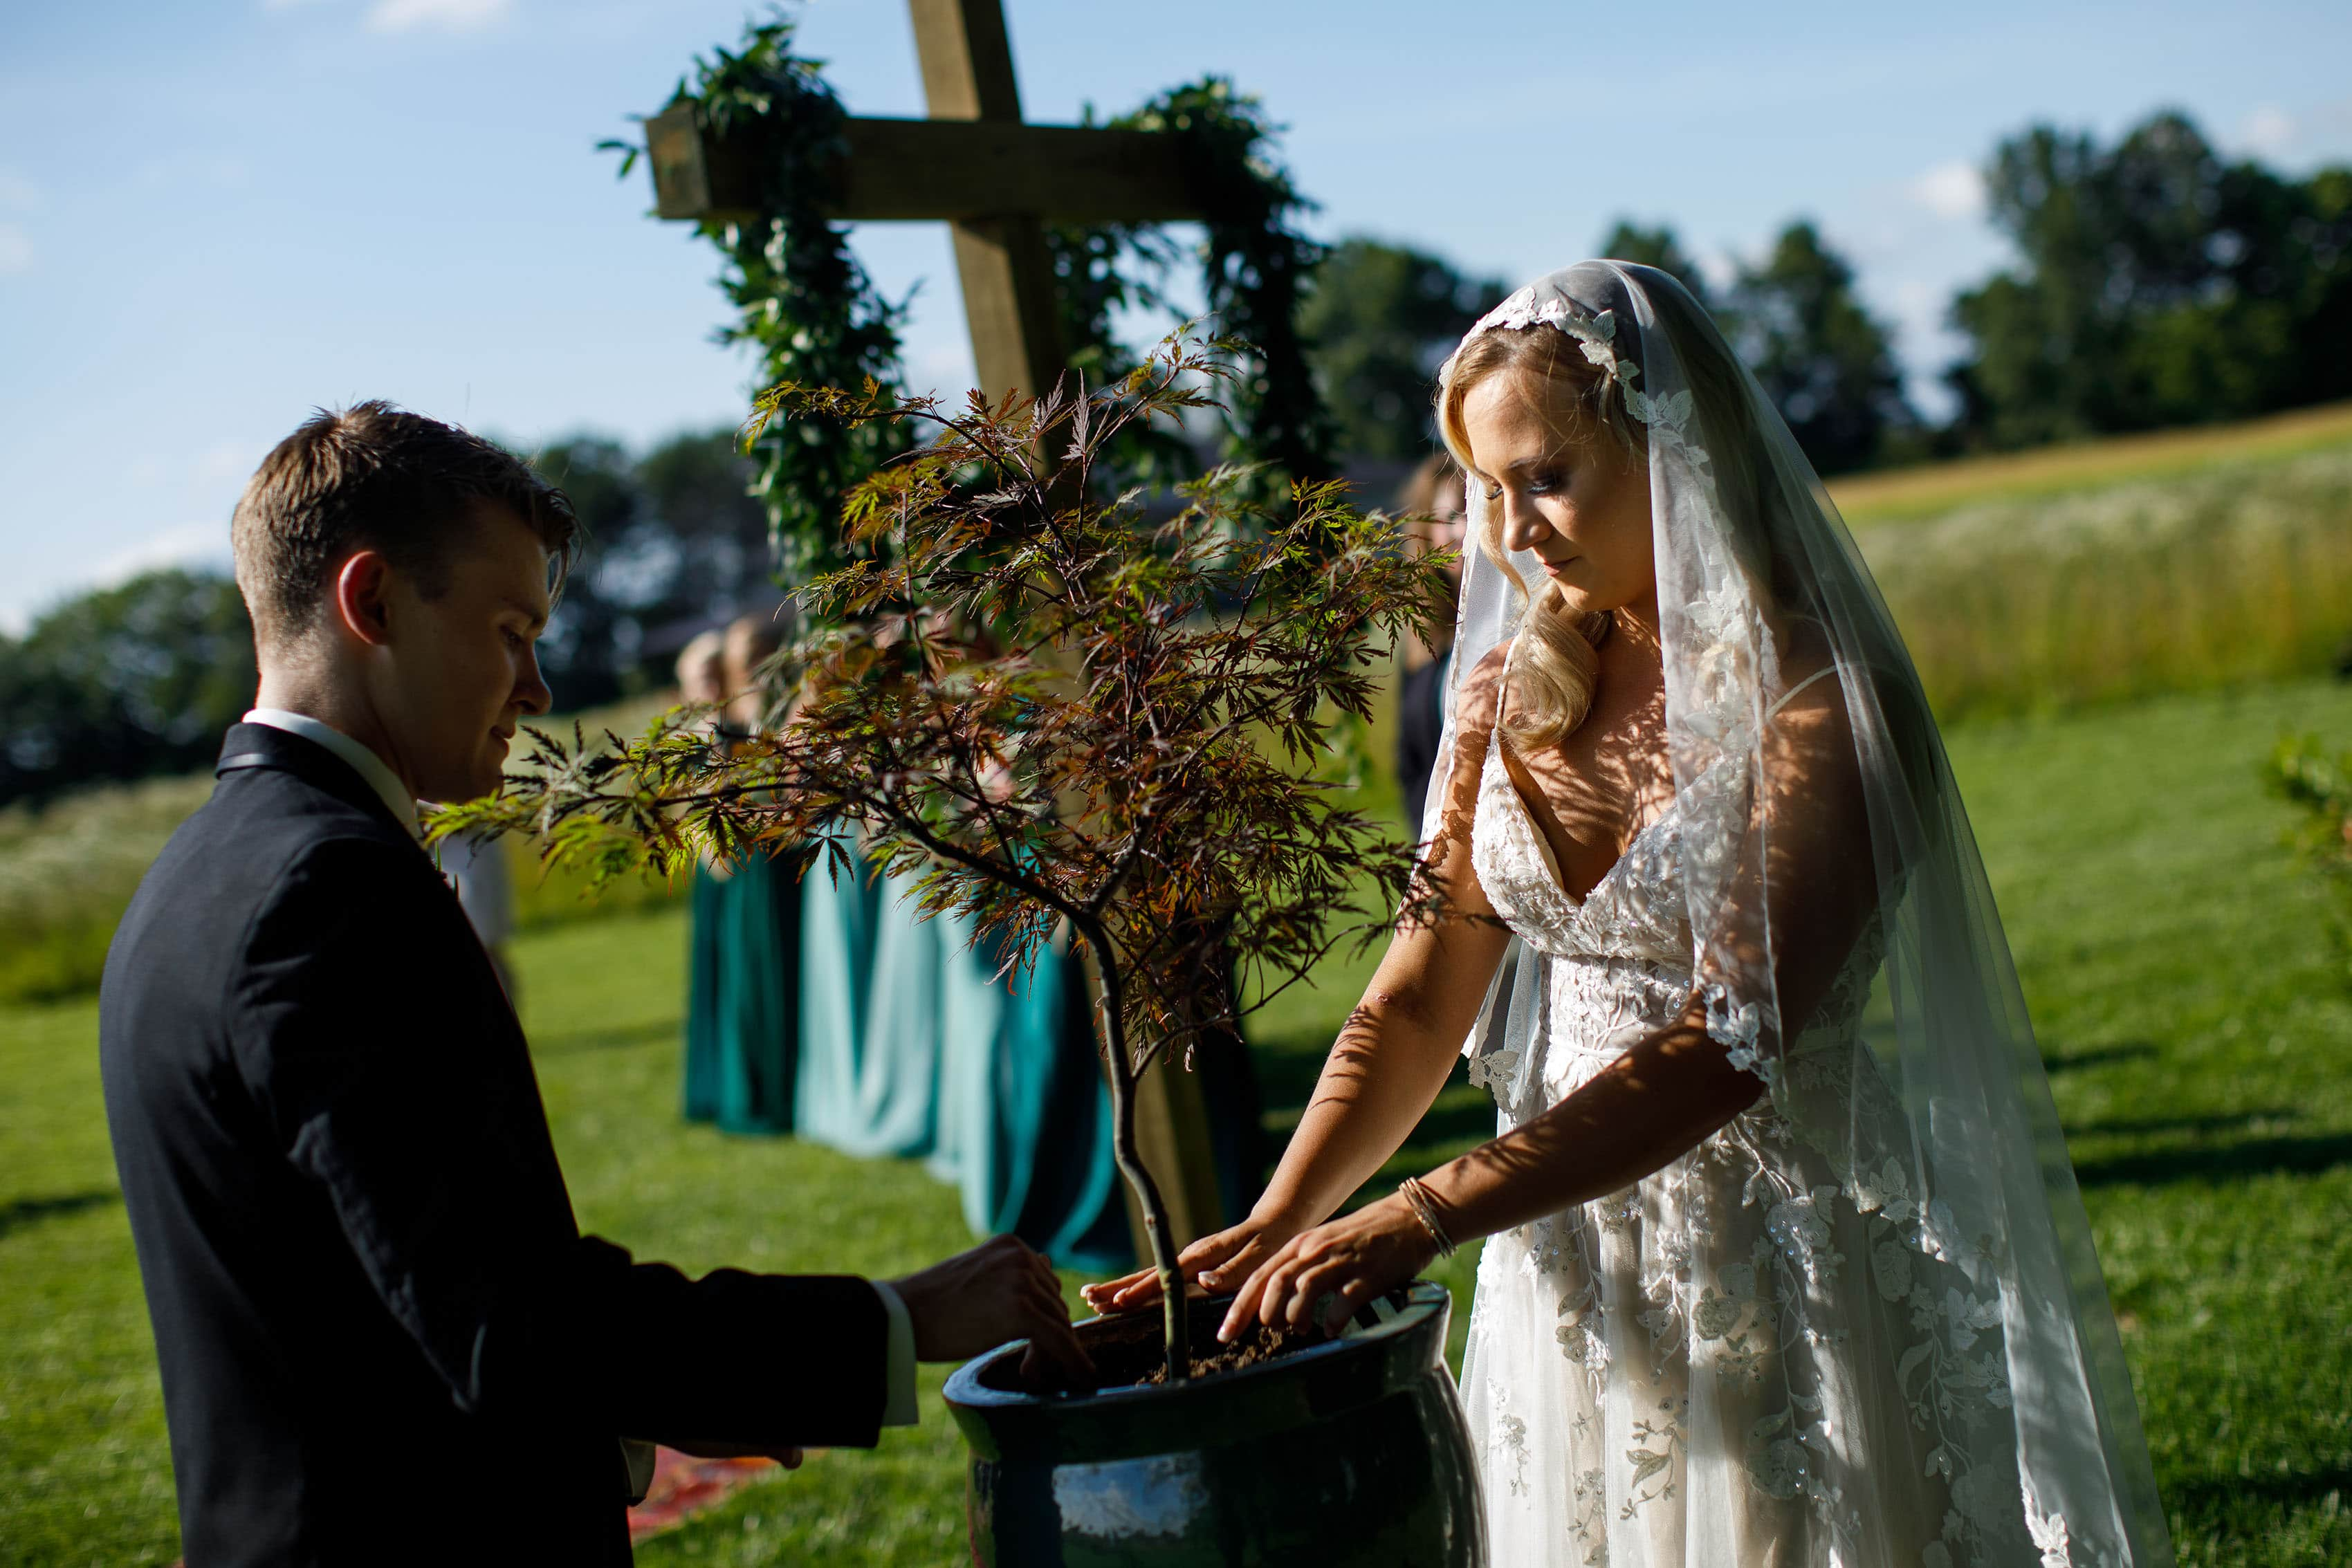 A bride and groom pot a tree during their wedding ceremony at Emerson Fields